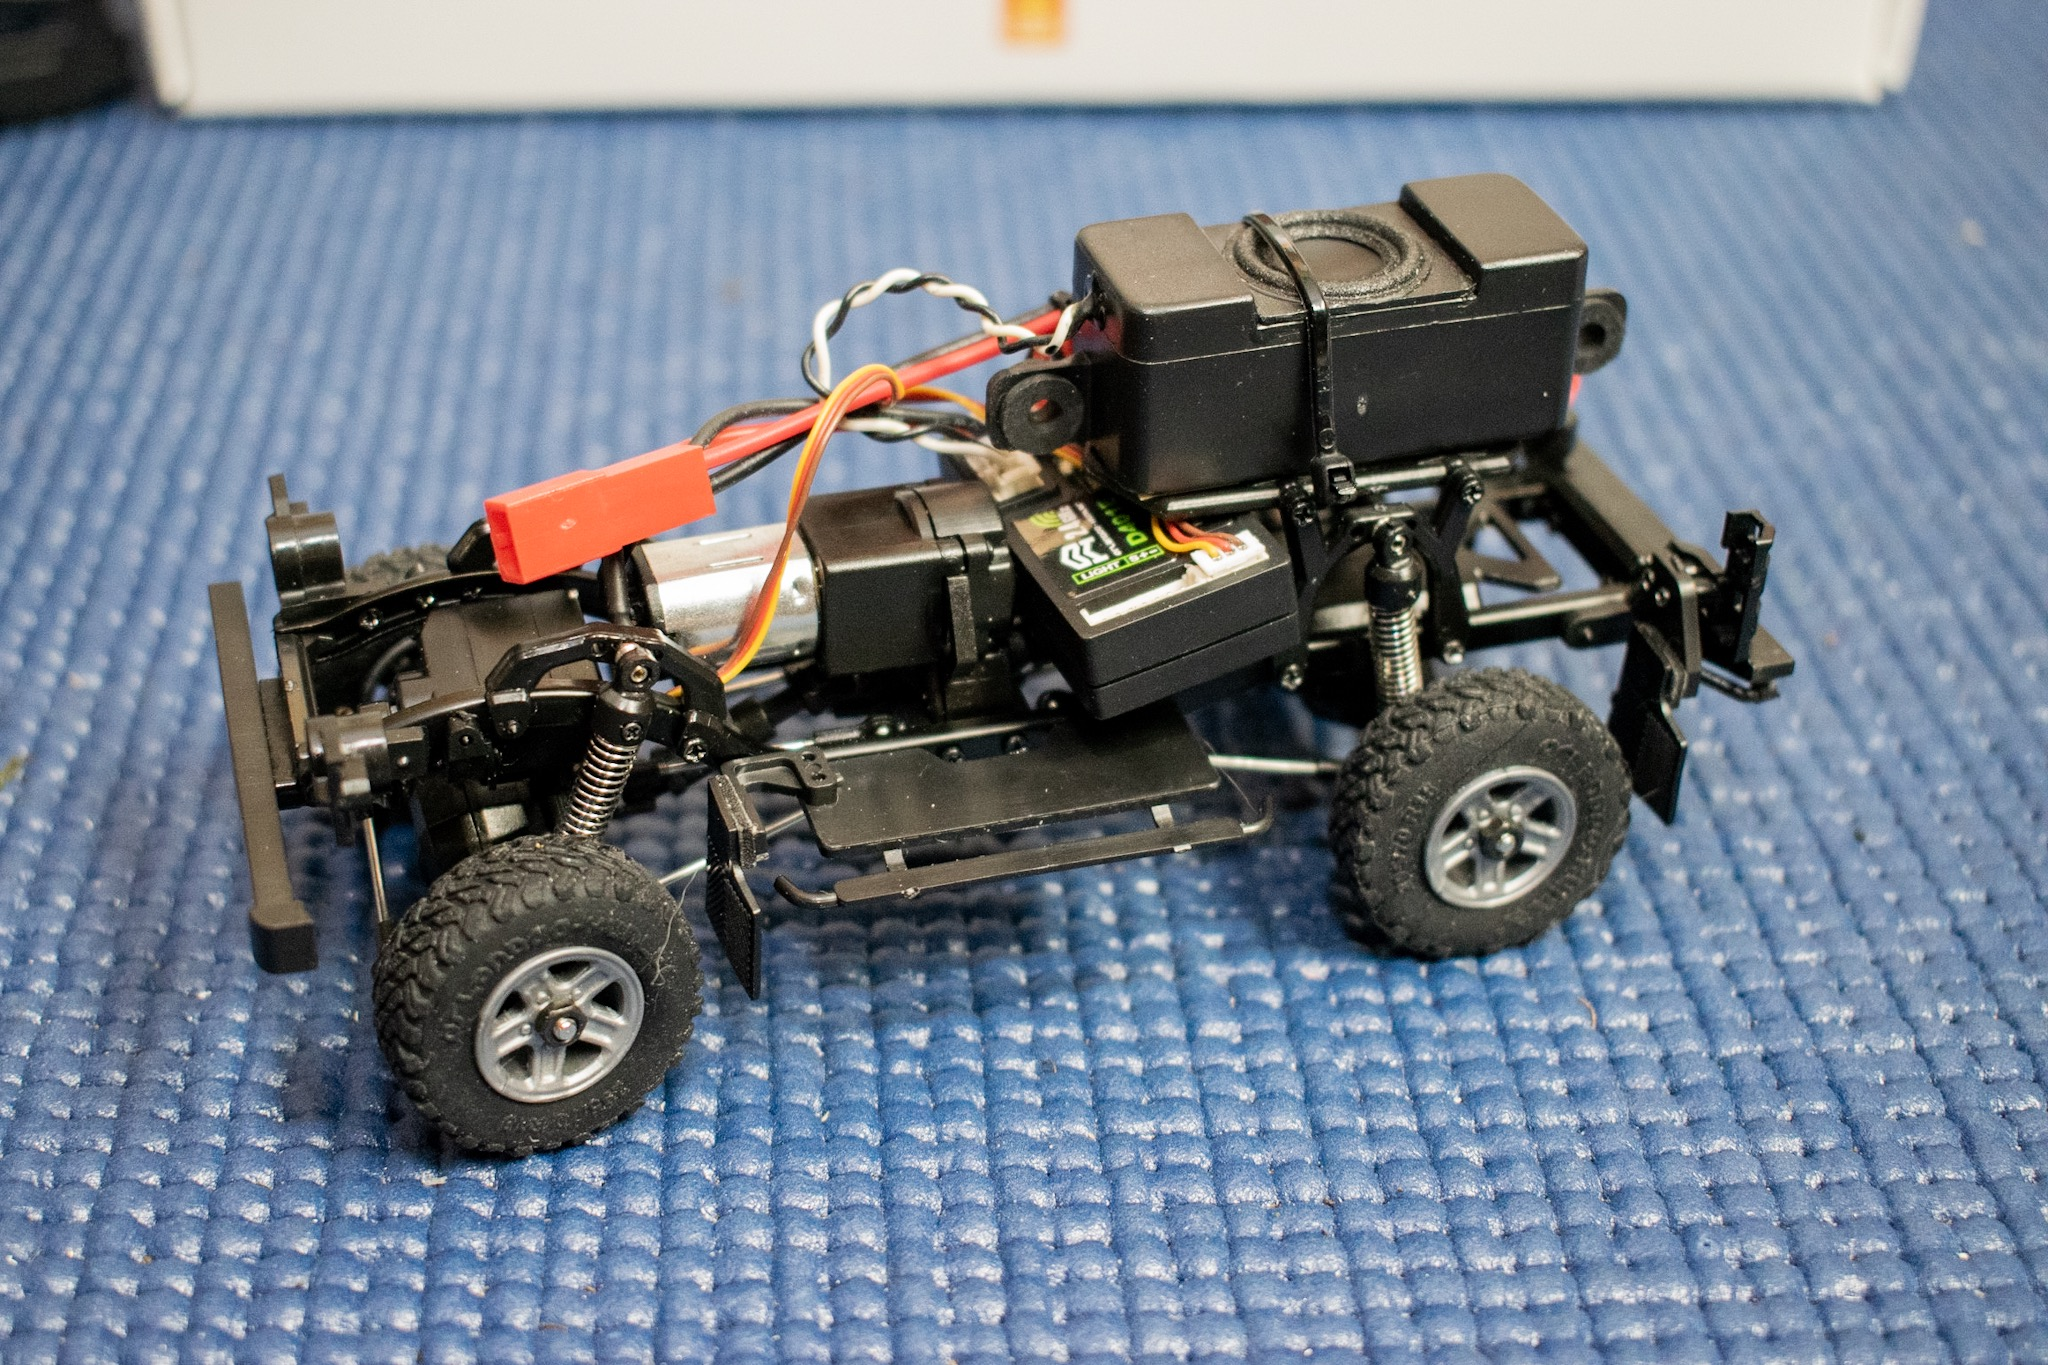 Orlandoo Hunter OH32A03 - Chassis Complete 2